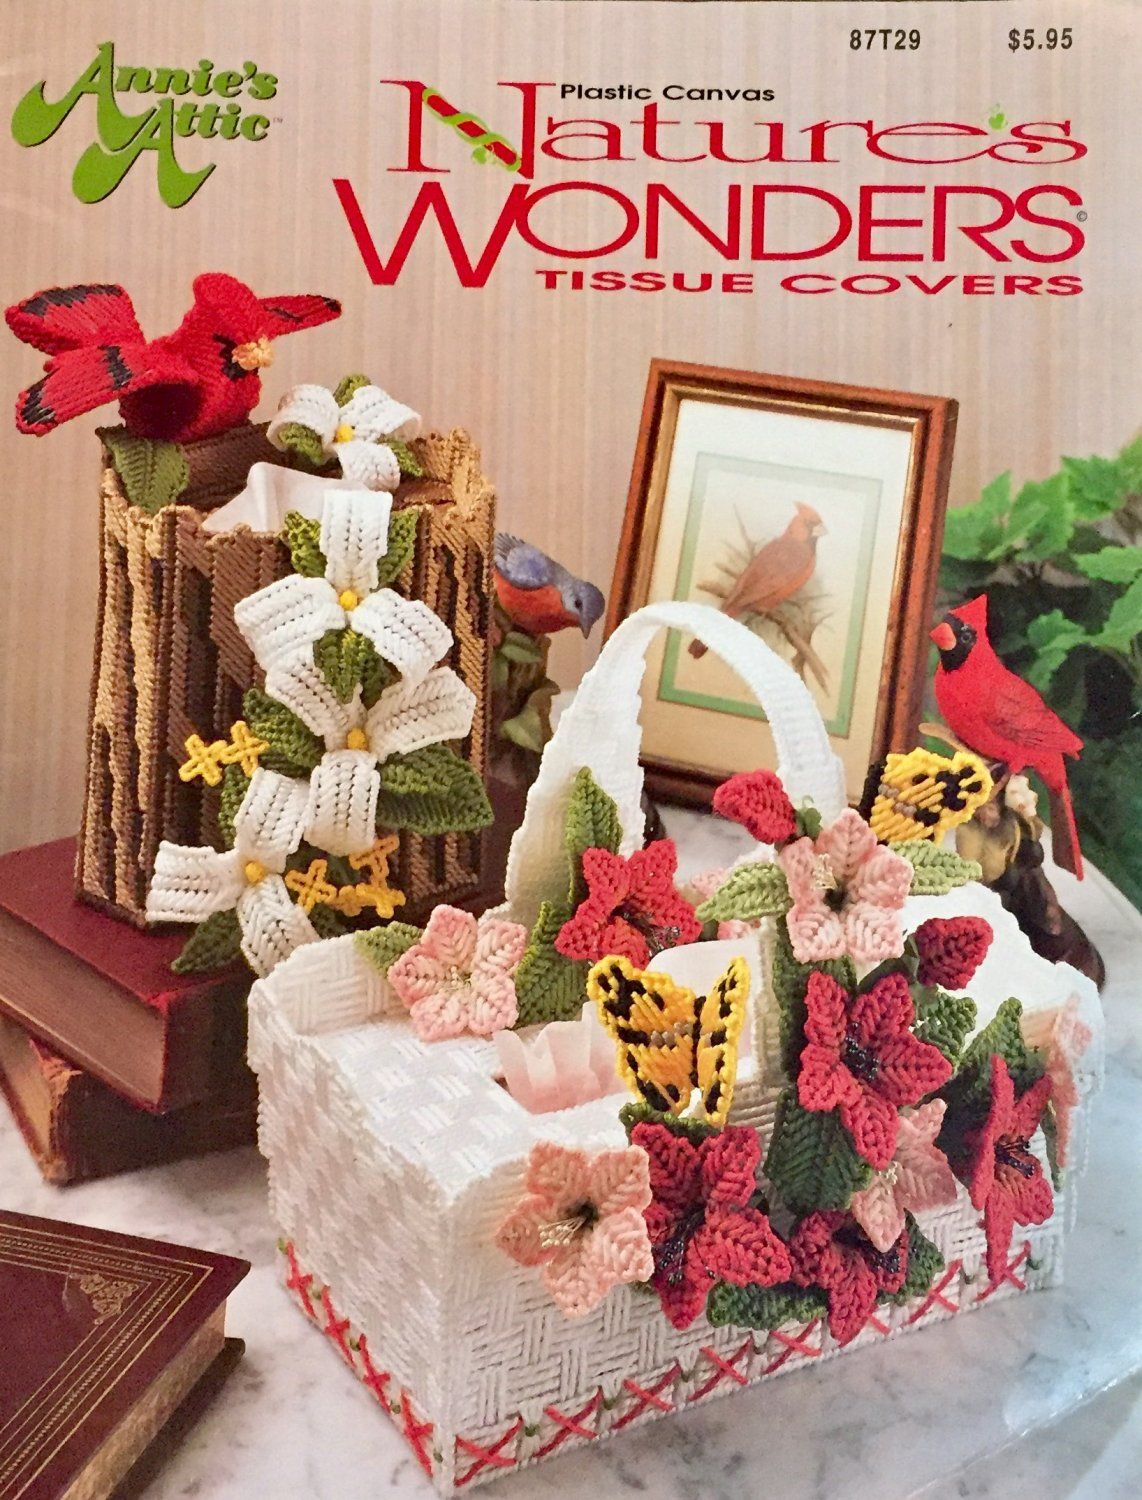 Nature's Wonders Tissue Covers In Plastic Canvas Pattern Annie's Attic 87T29 Tissue Box Covers